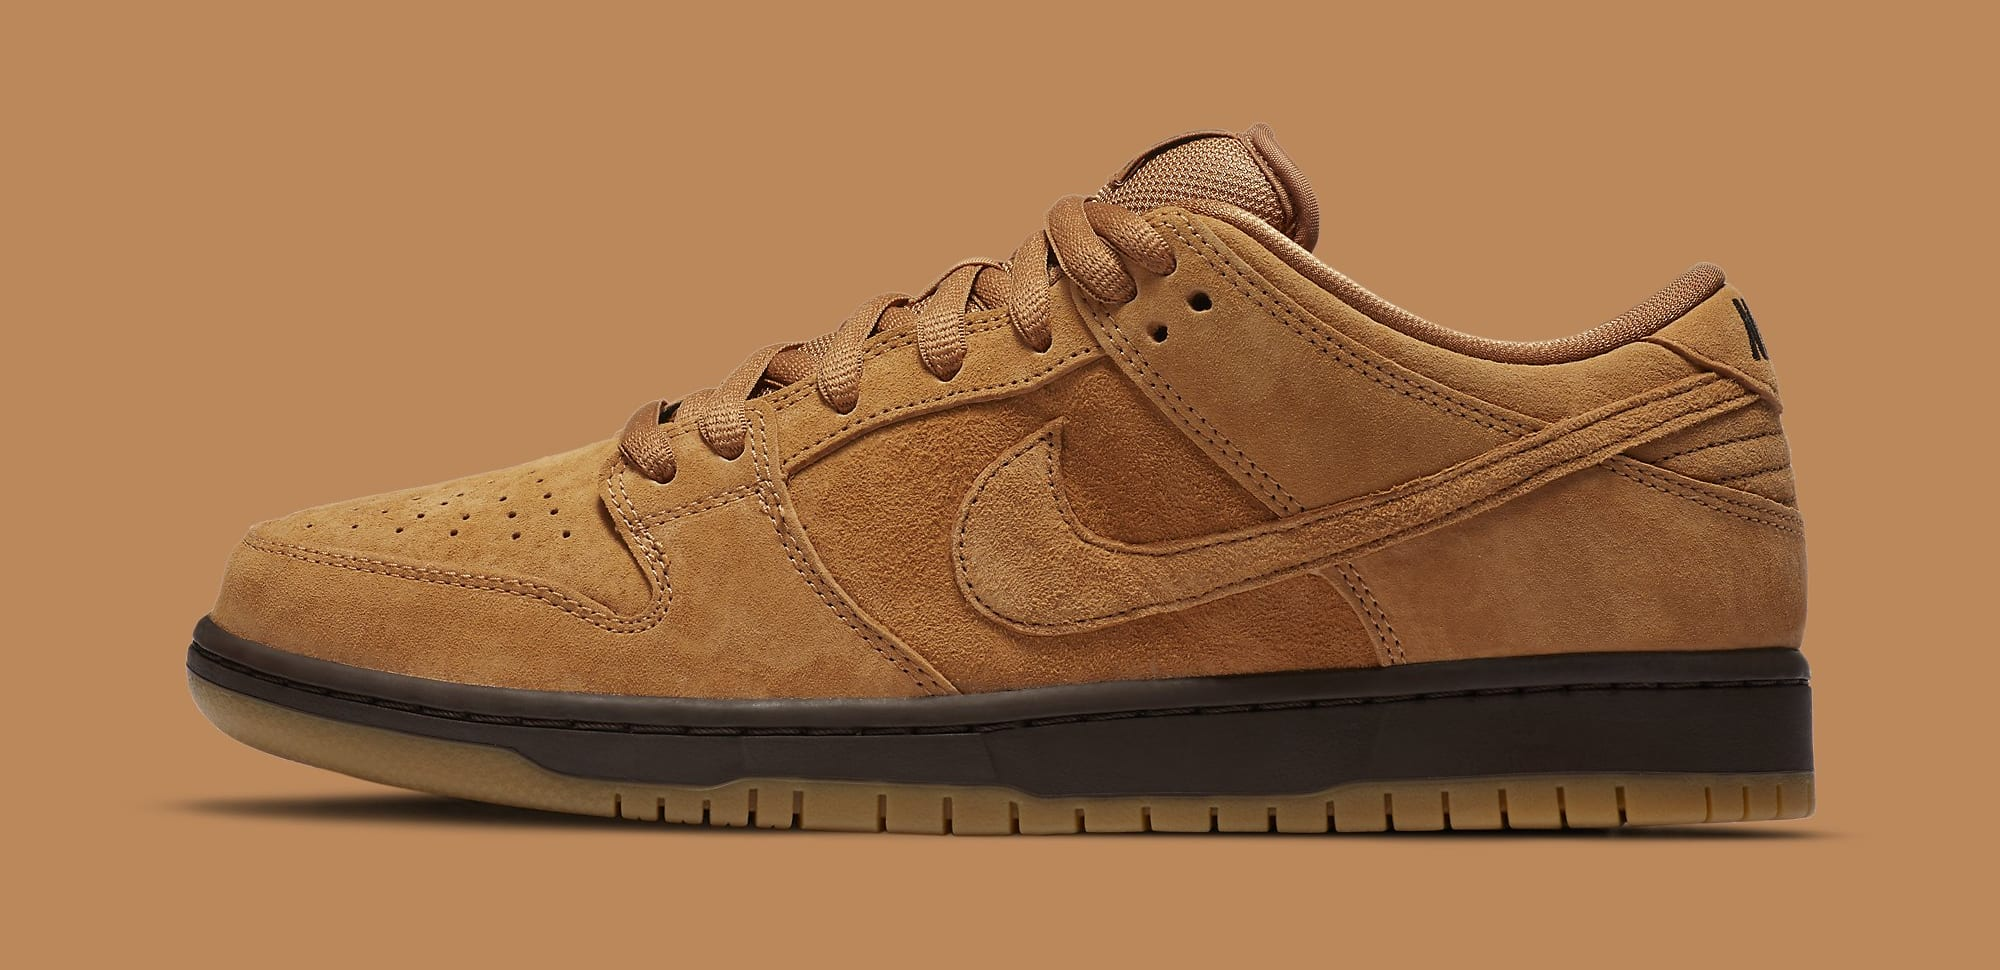 Nike SB Dunk Low 'Wheat Mocha' BQ6817-204 Lateral